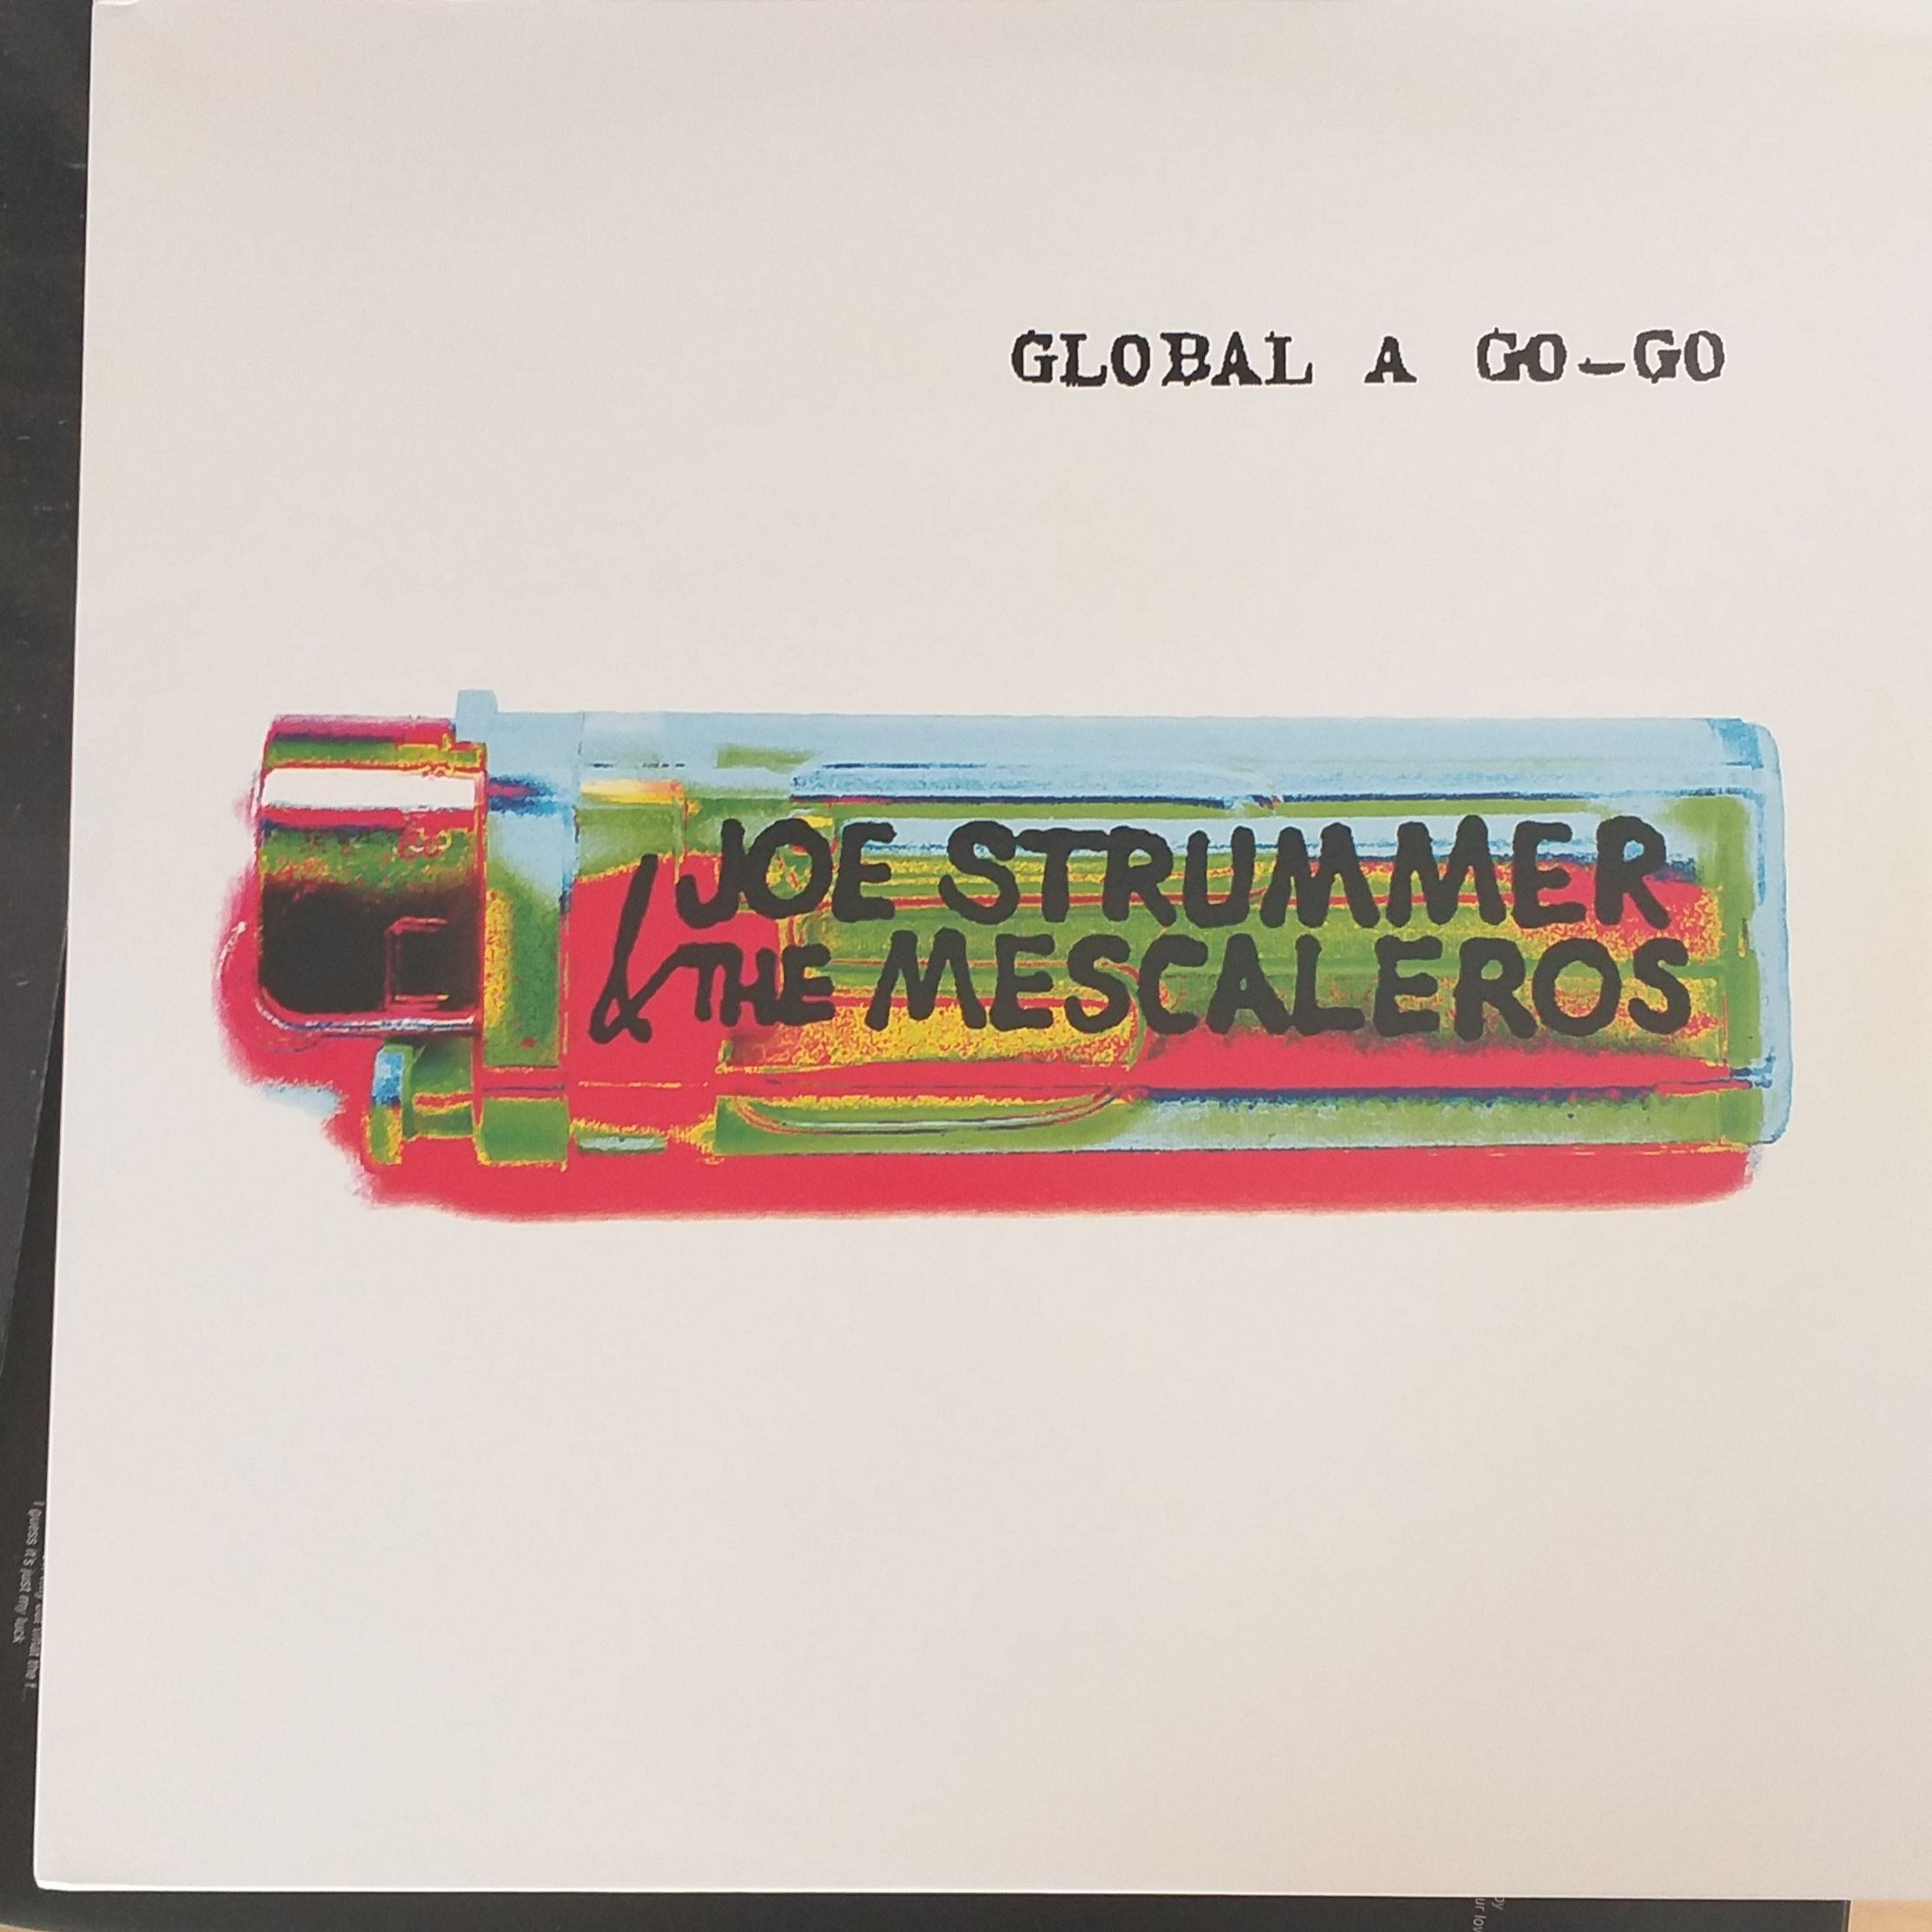 Joe Strummer and the mescaleros Global a go-go LP undefined